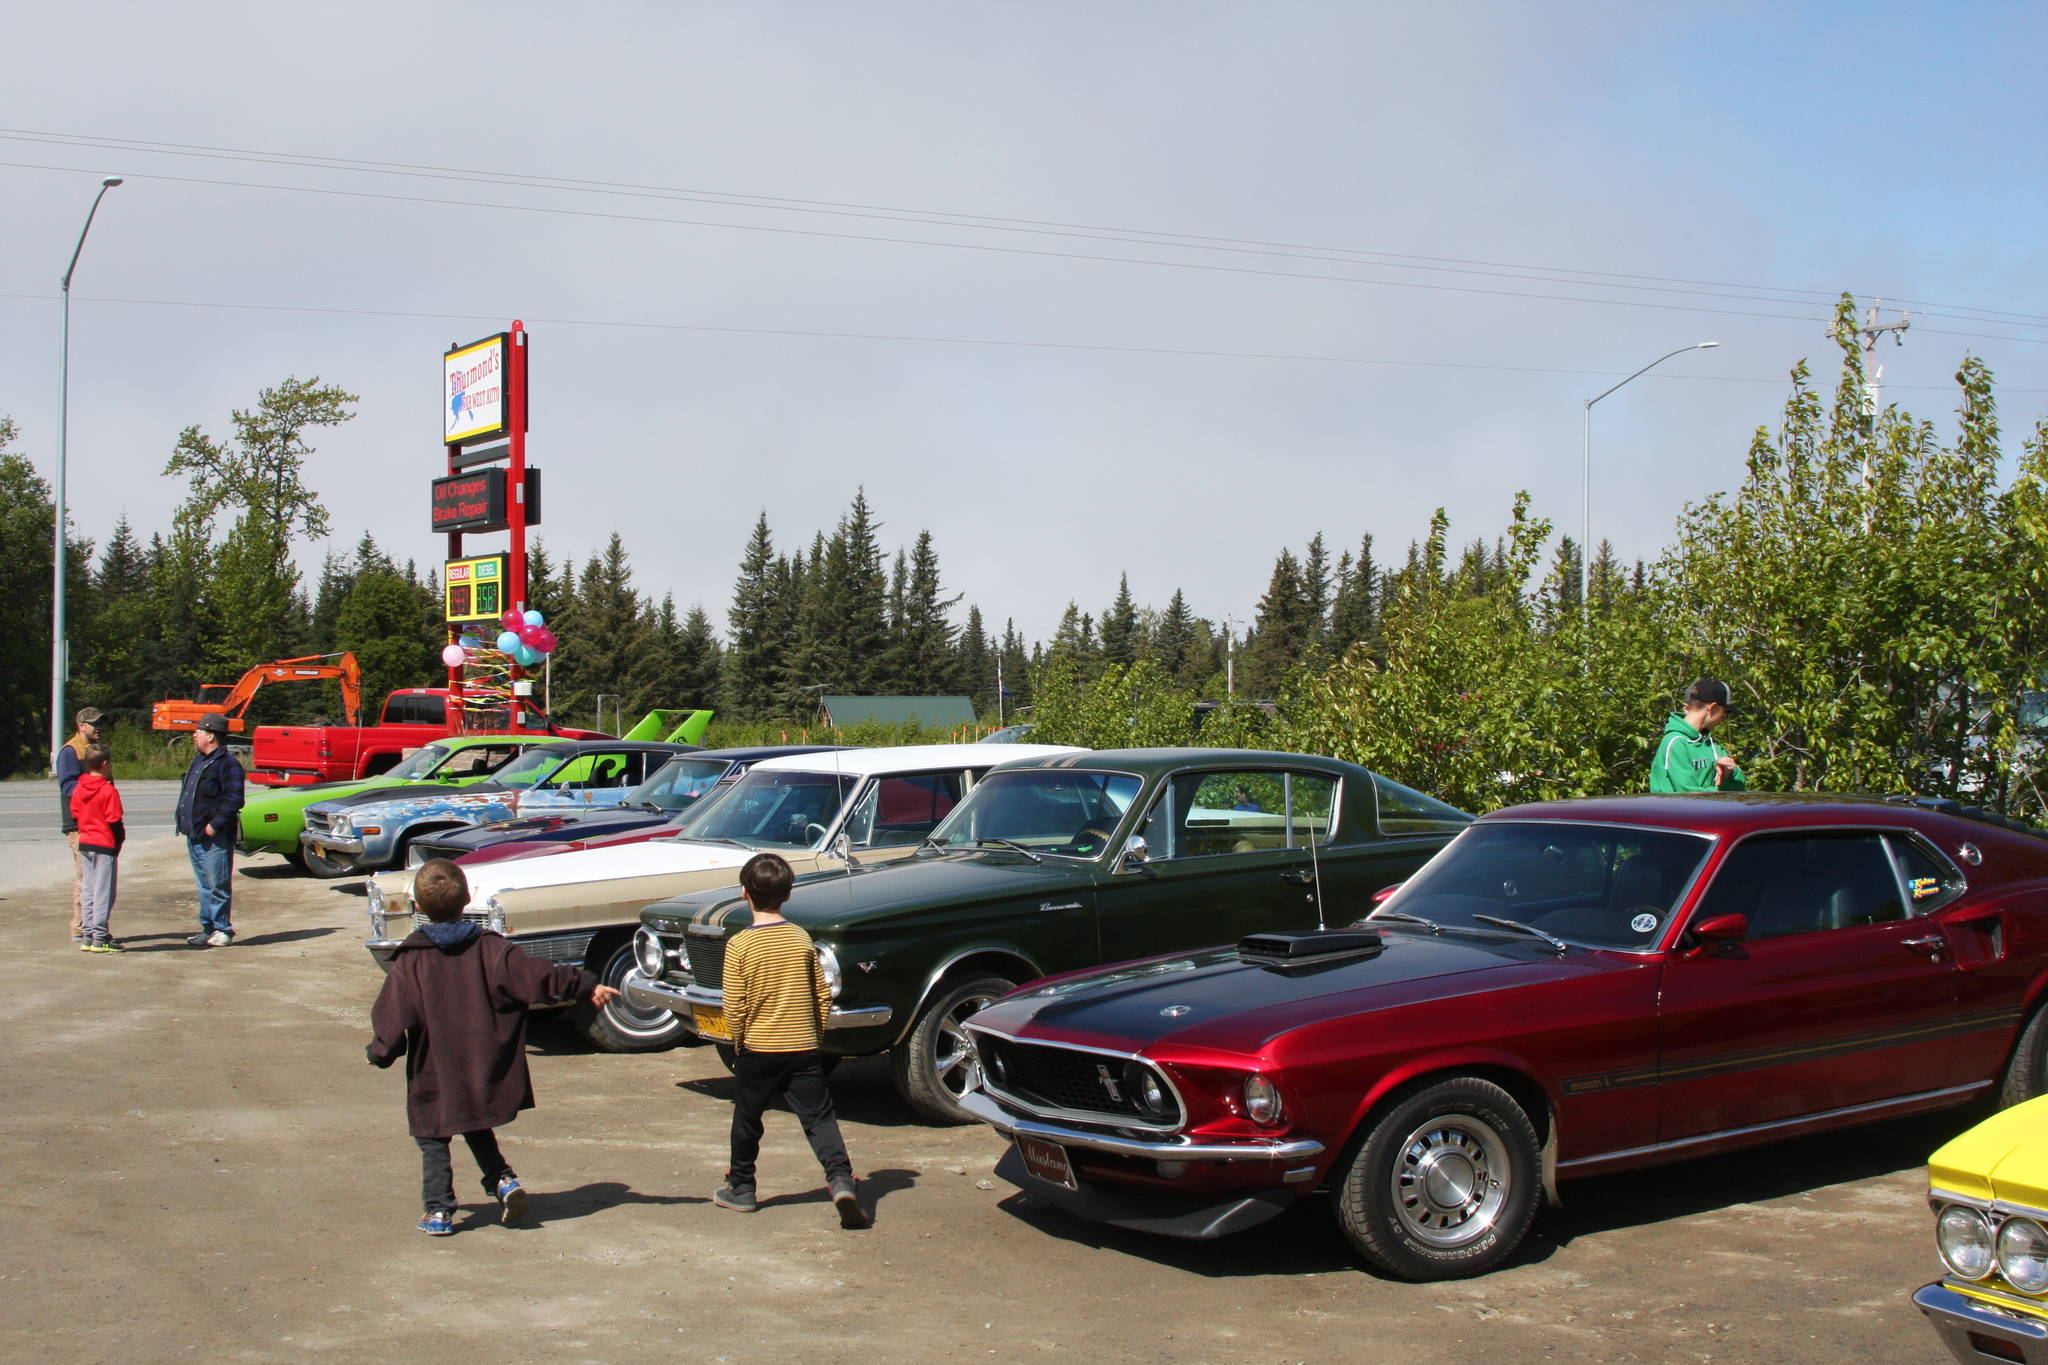 Local Anchor Point residents gather at Thurmond's Far West Auto for their fourth annual Customer Appreciation Day on Saturday, June 9 in Anchor Point, Alaska. (Photo by Delcenia Cosman)